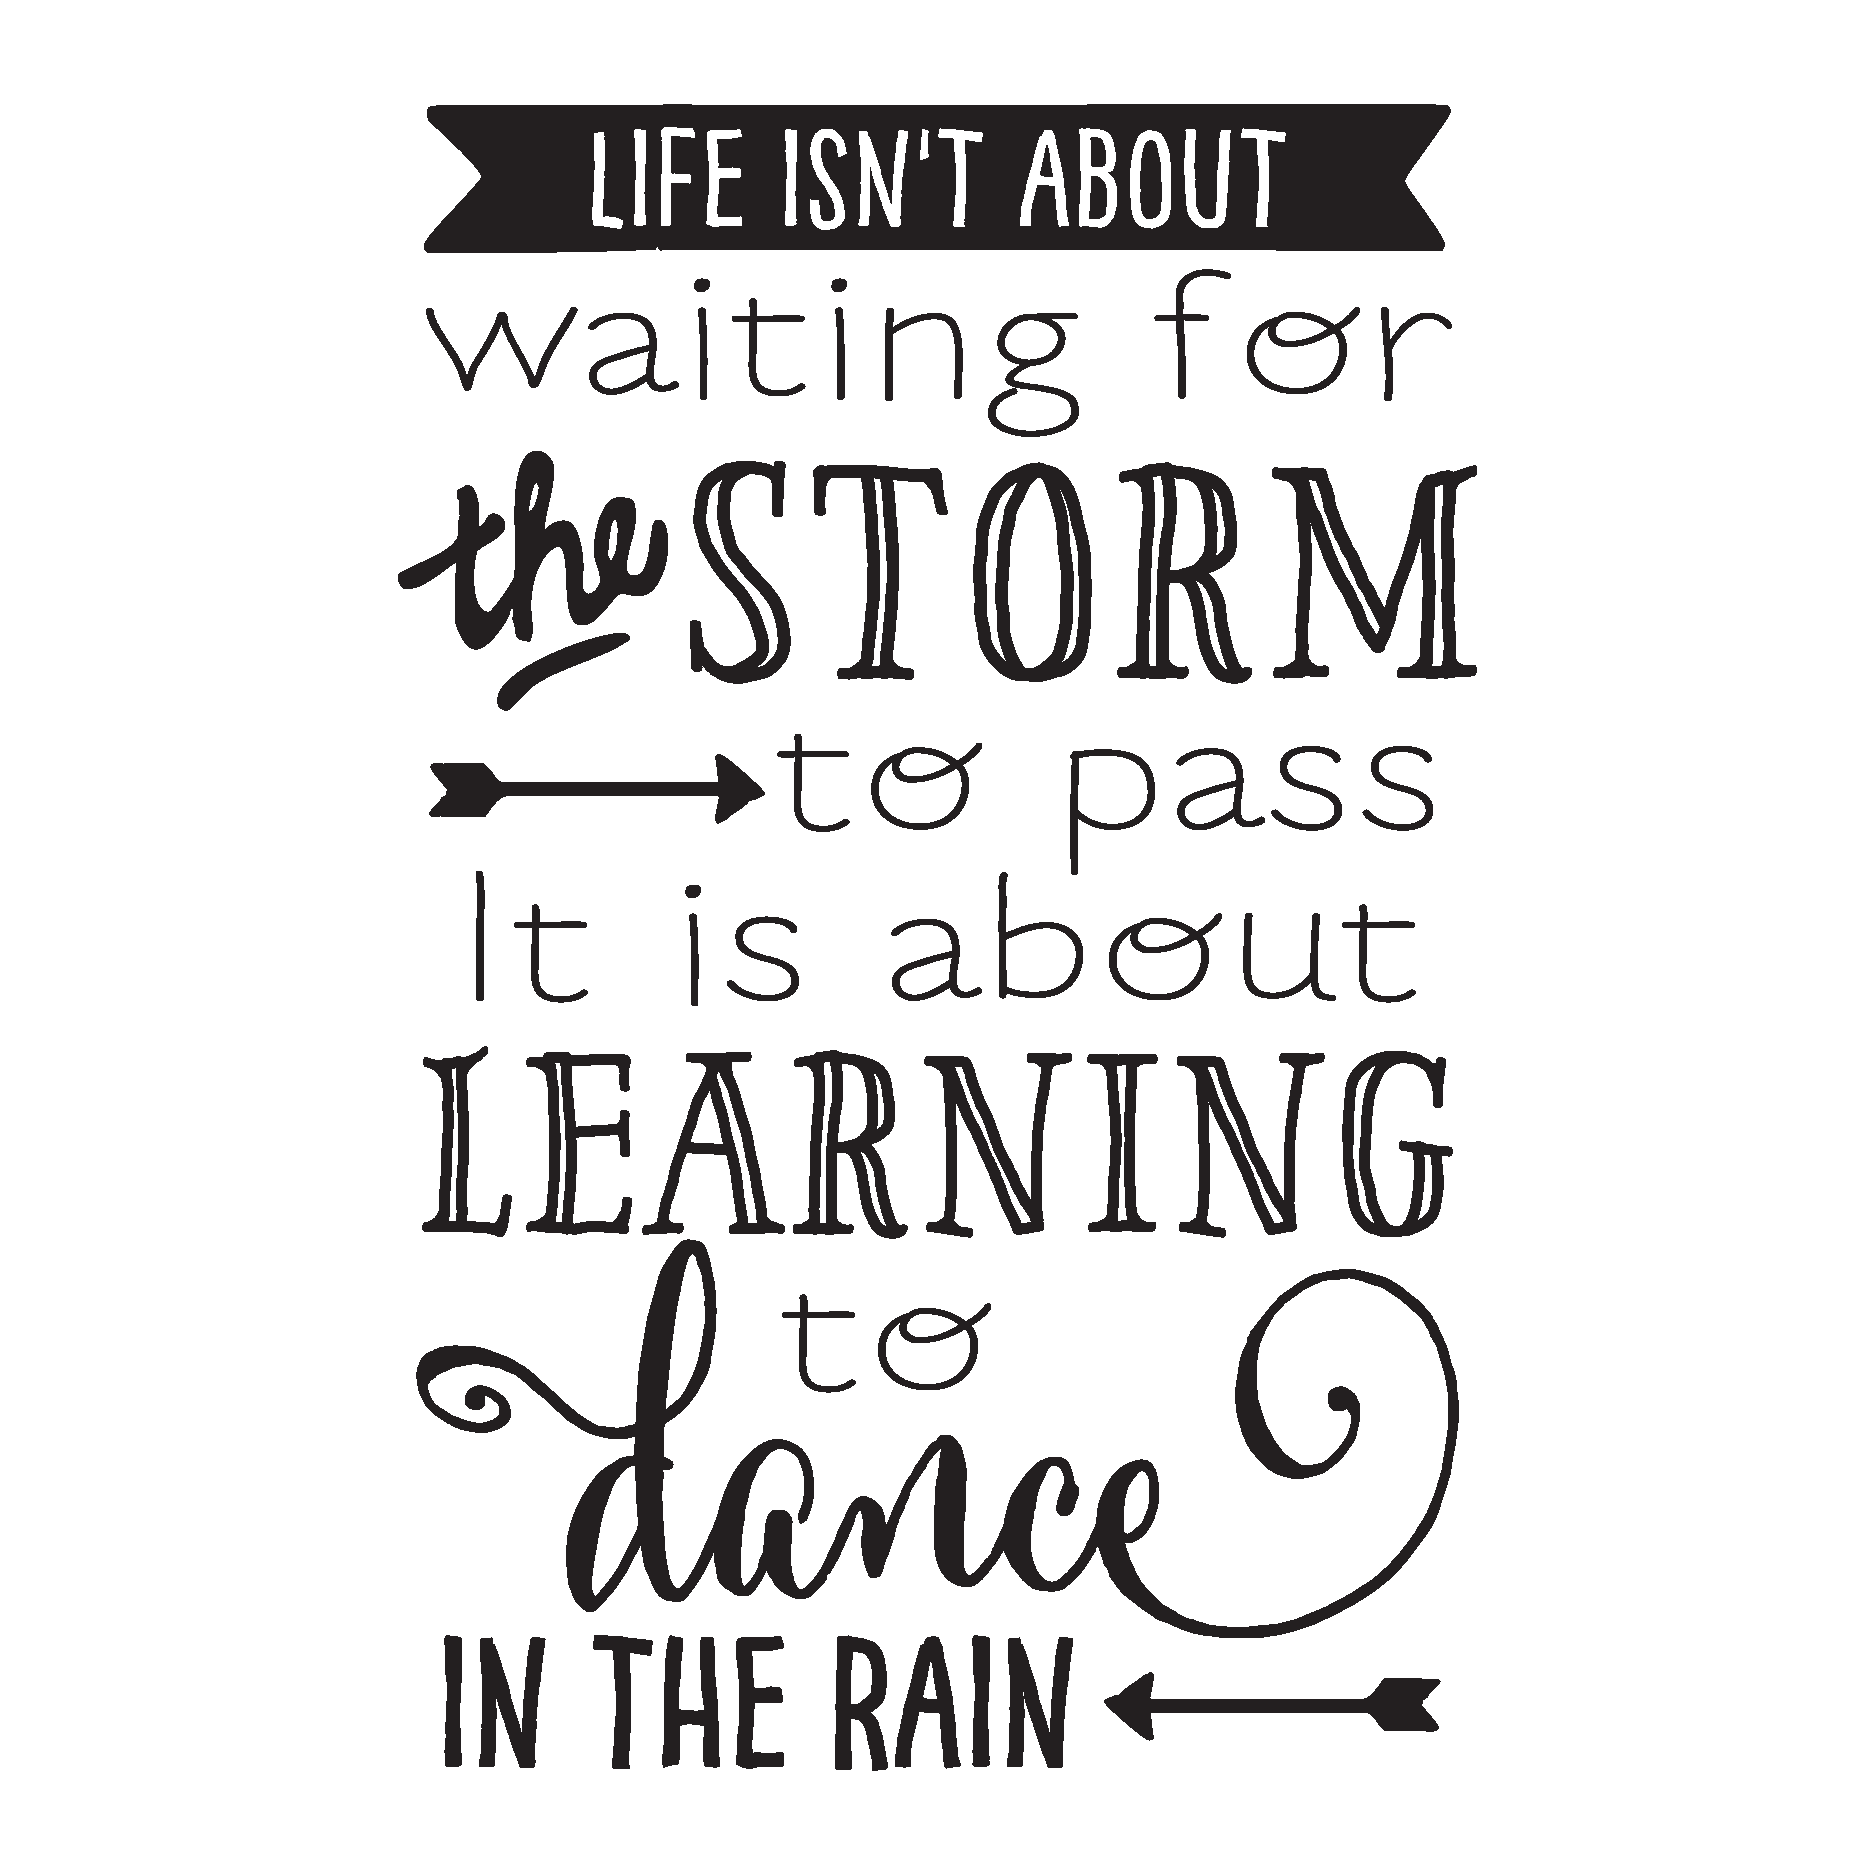 Life Dancing In The Rain Quote Life Isn't About Waiting For The Storm To Pass It's About Learning